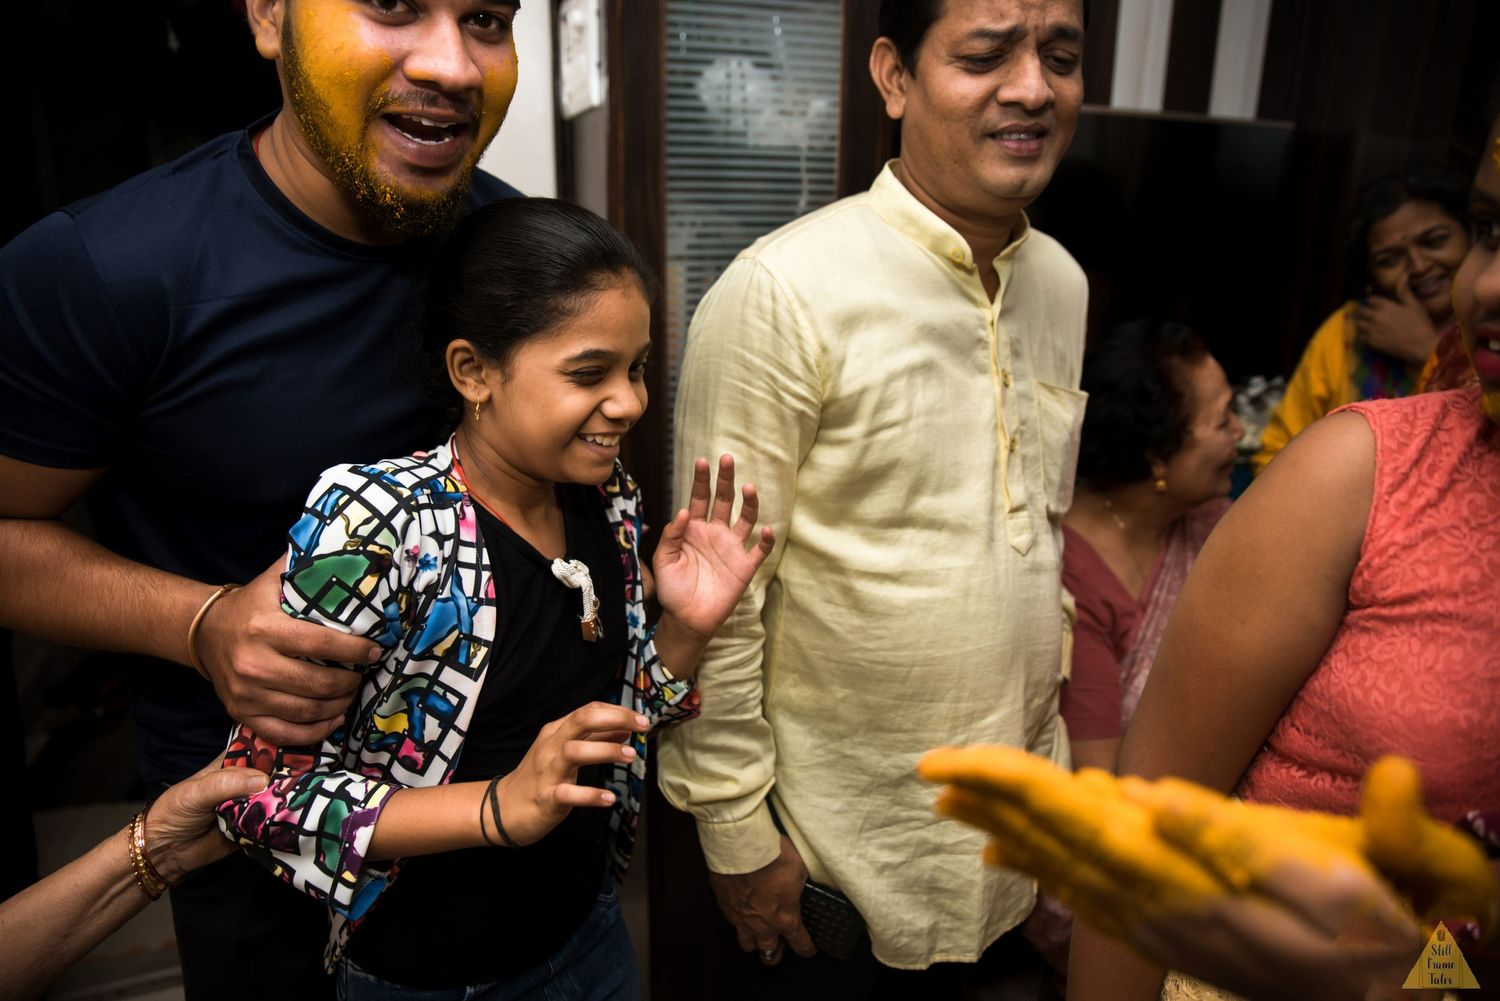 Brother grab sister to put some haldi on her face during haldi ritual